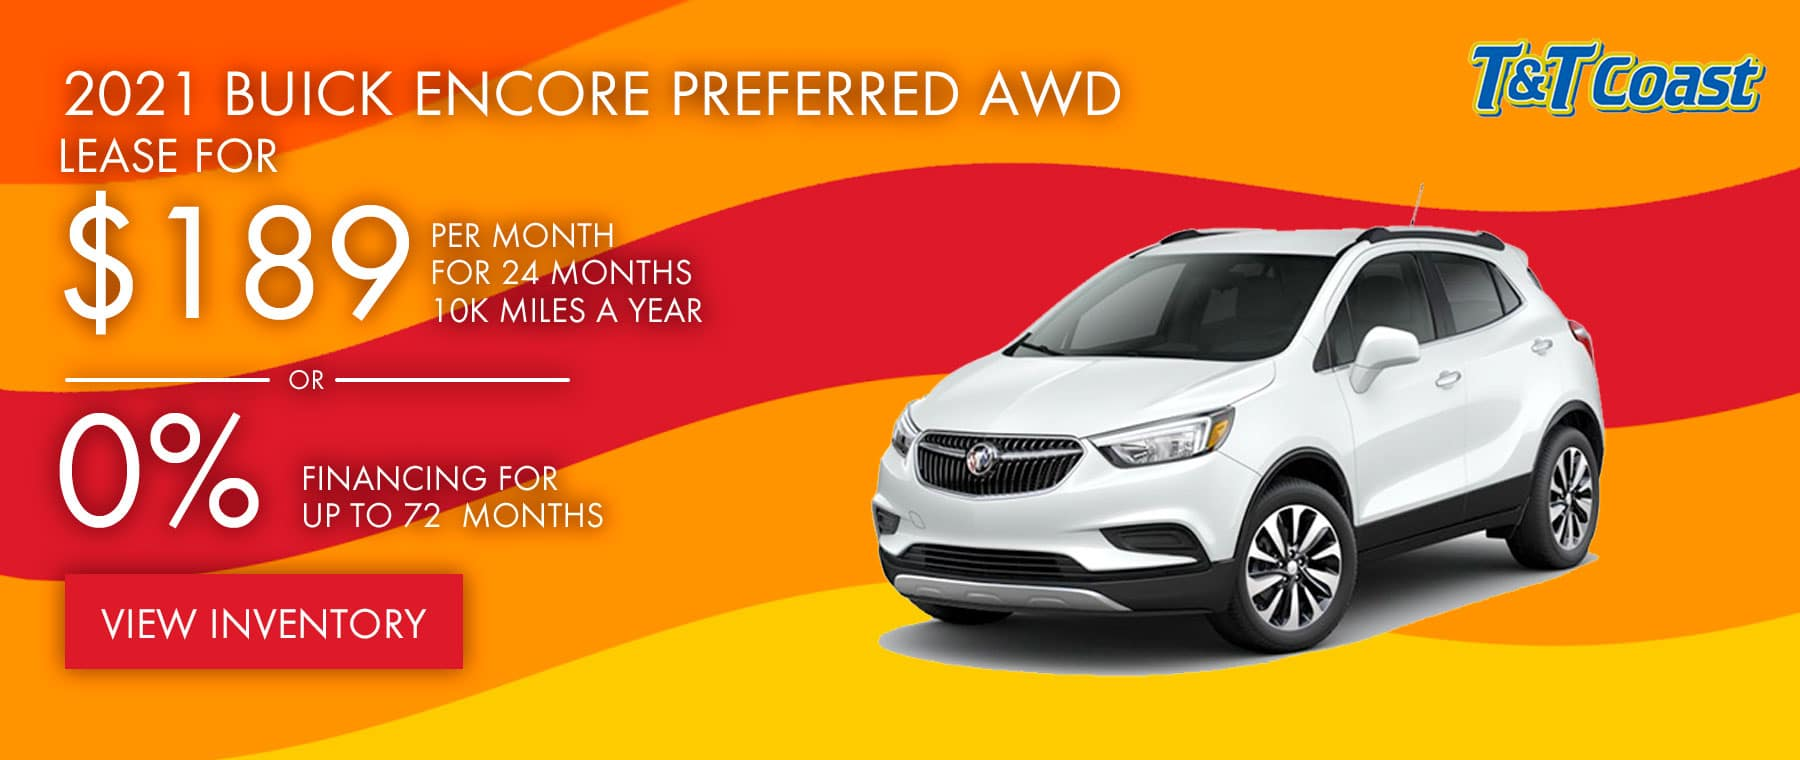 2021 BUICK ENCORE PREFERRED AWD $189 a month for 24 months OR 0% financing for up to 72 months